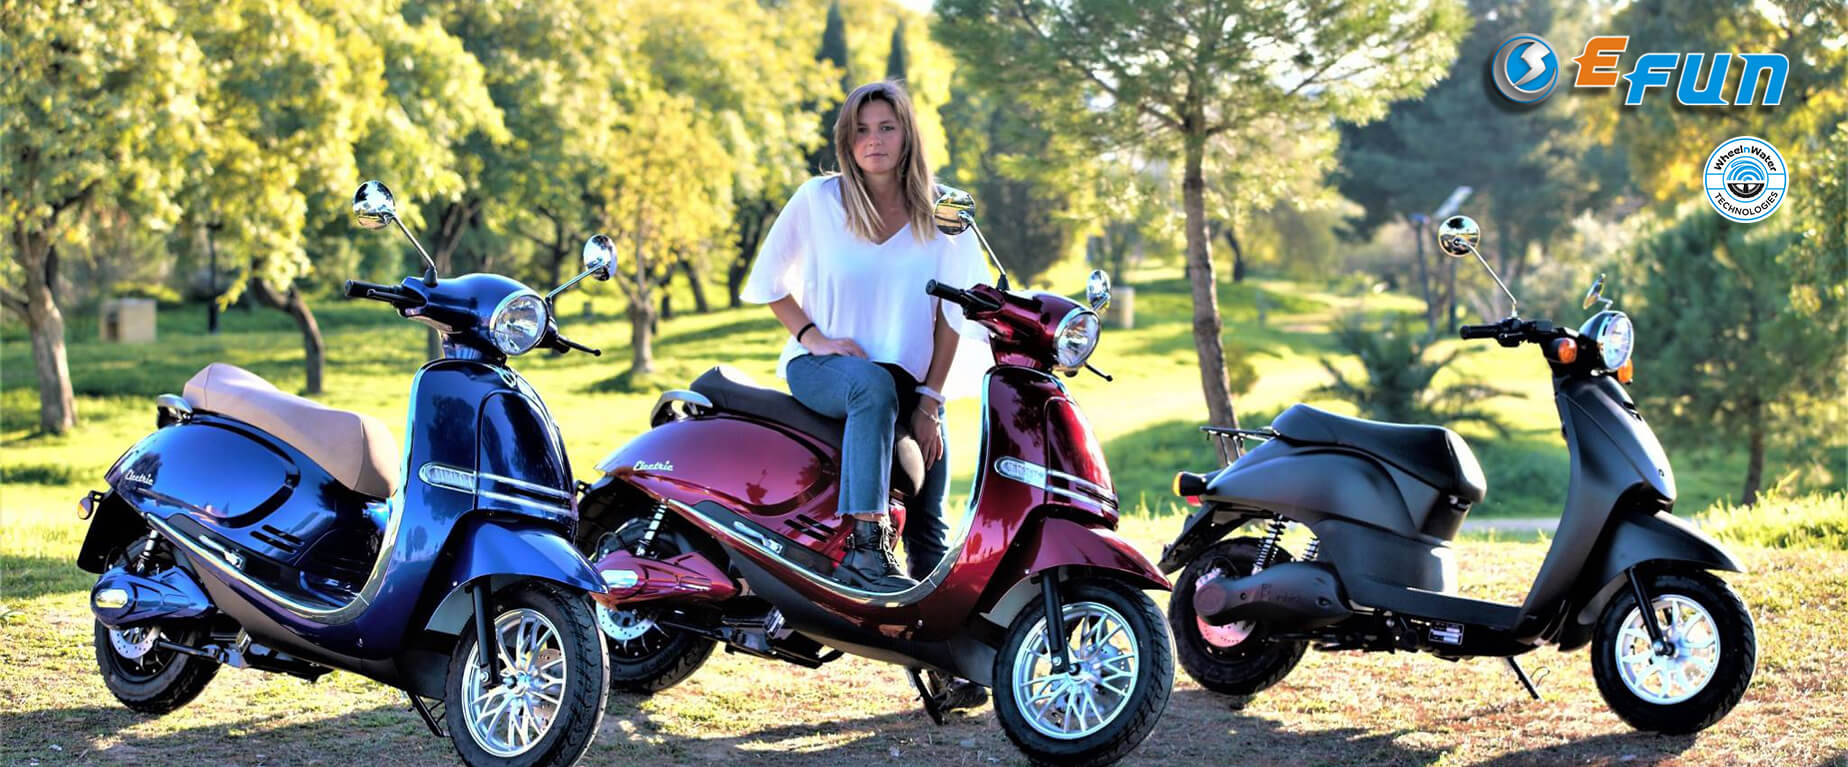 electric scooters-motorcycles Efun, Pusa, E2go